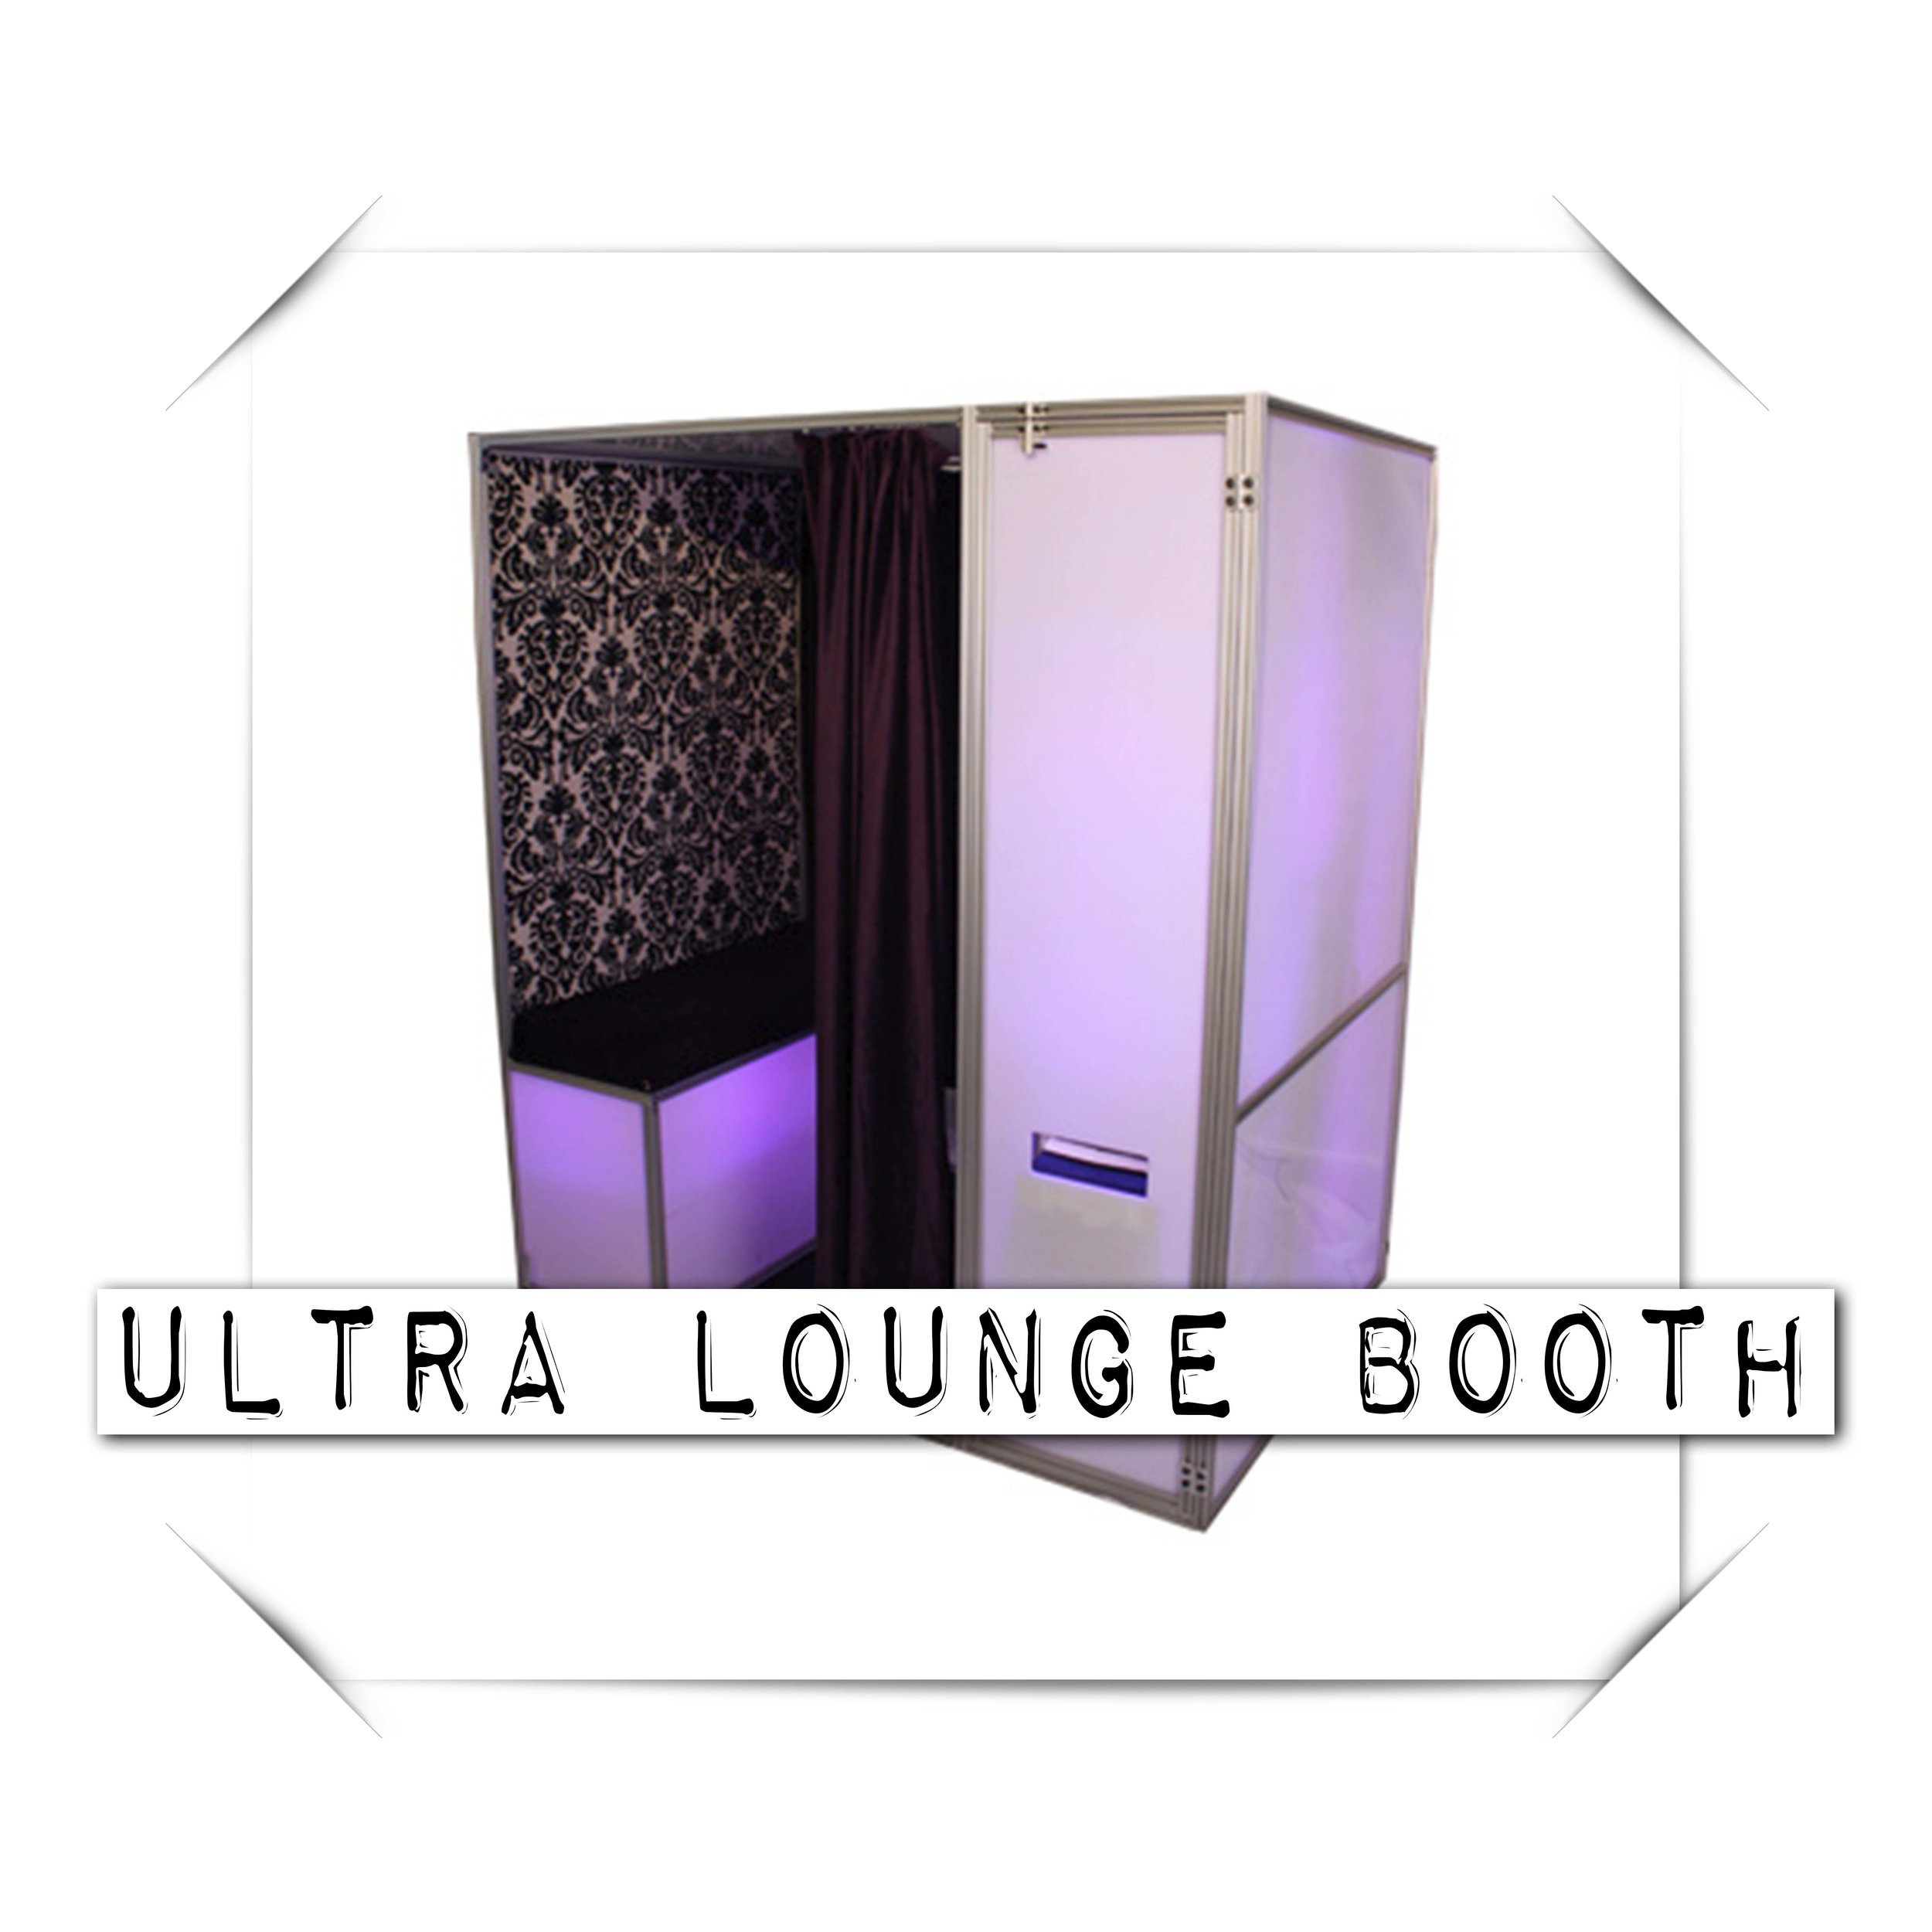 Ultra_Lounge_Booth.jpg